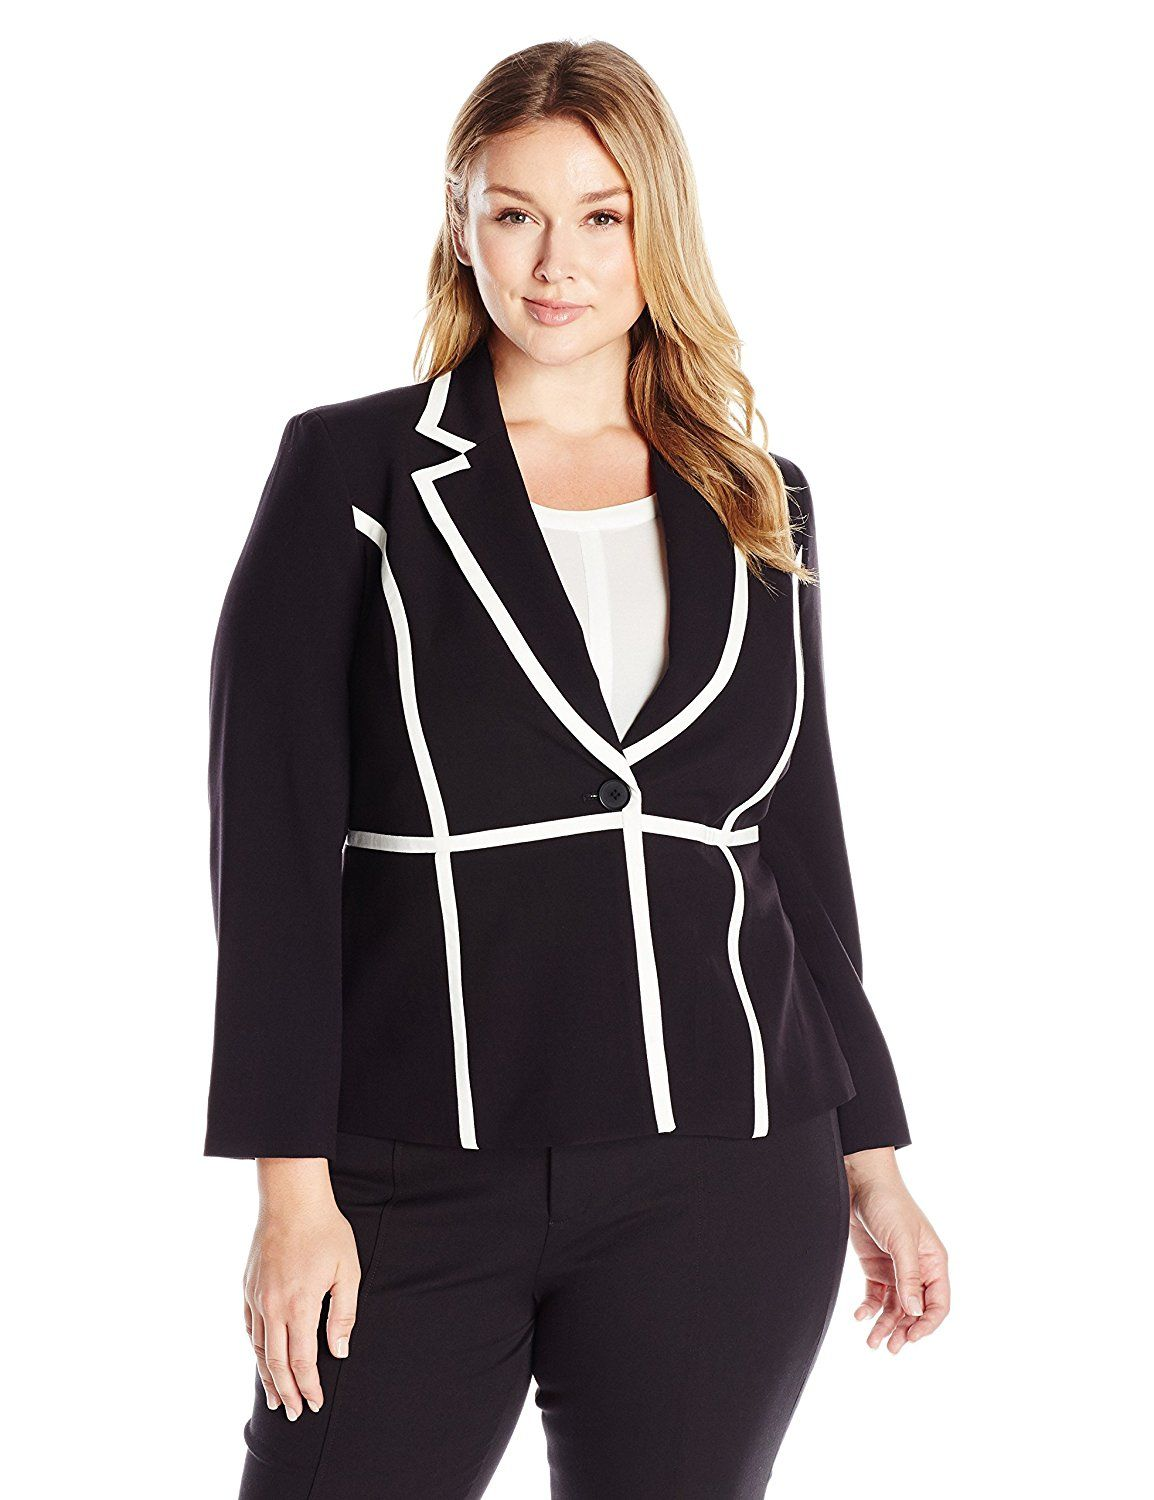 b5869d8f3ad71 Nine West Women s Plus-Size One-Button Piped Jacket   Find out more details  by clicking the image   Plus size coats